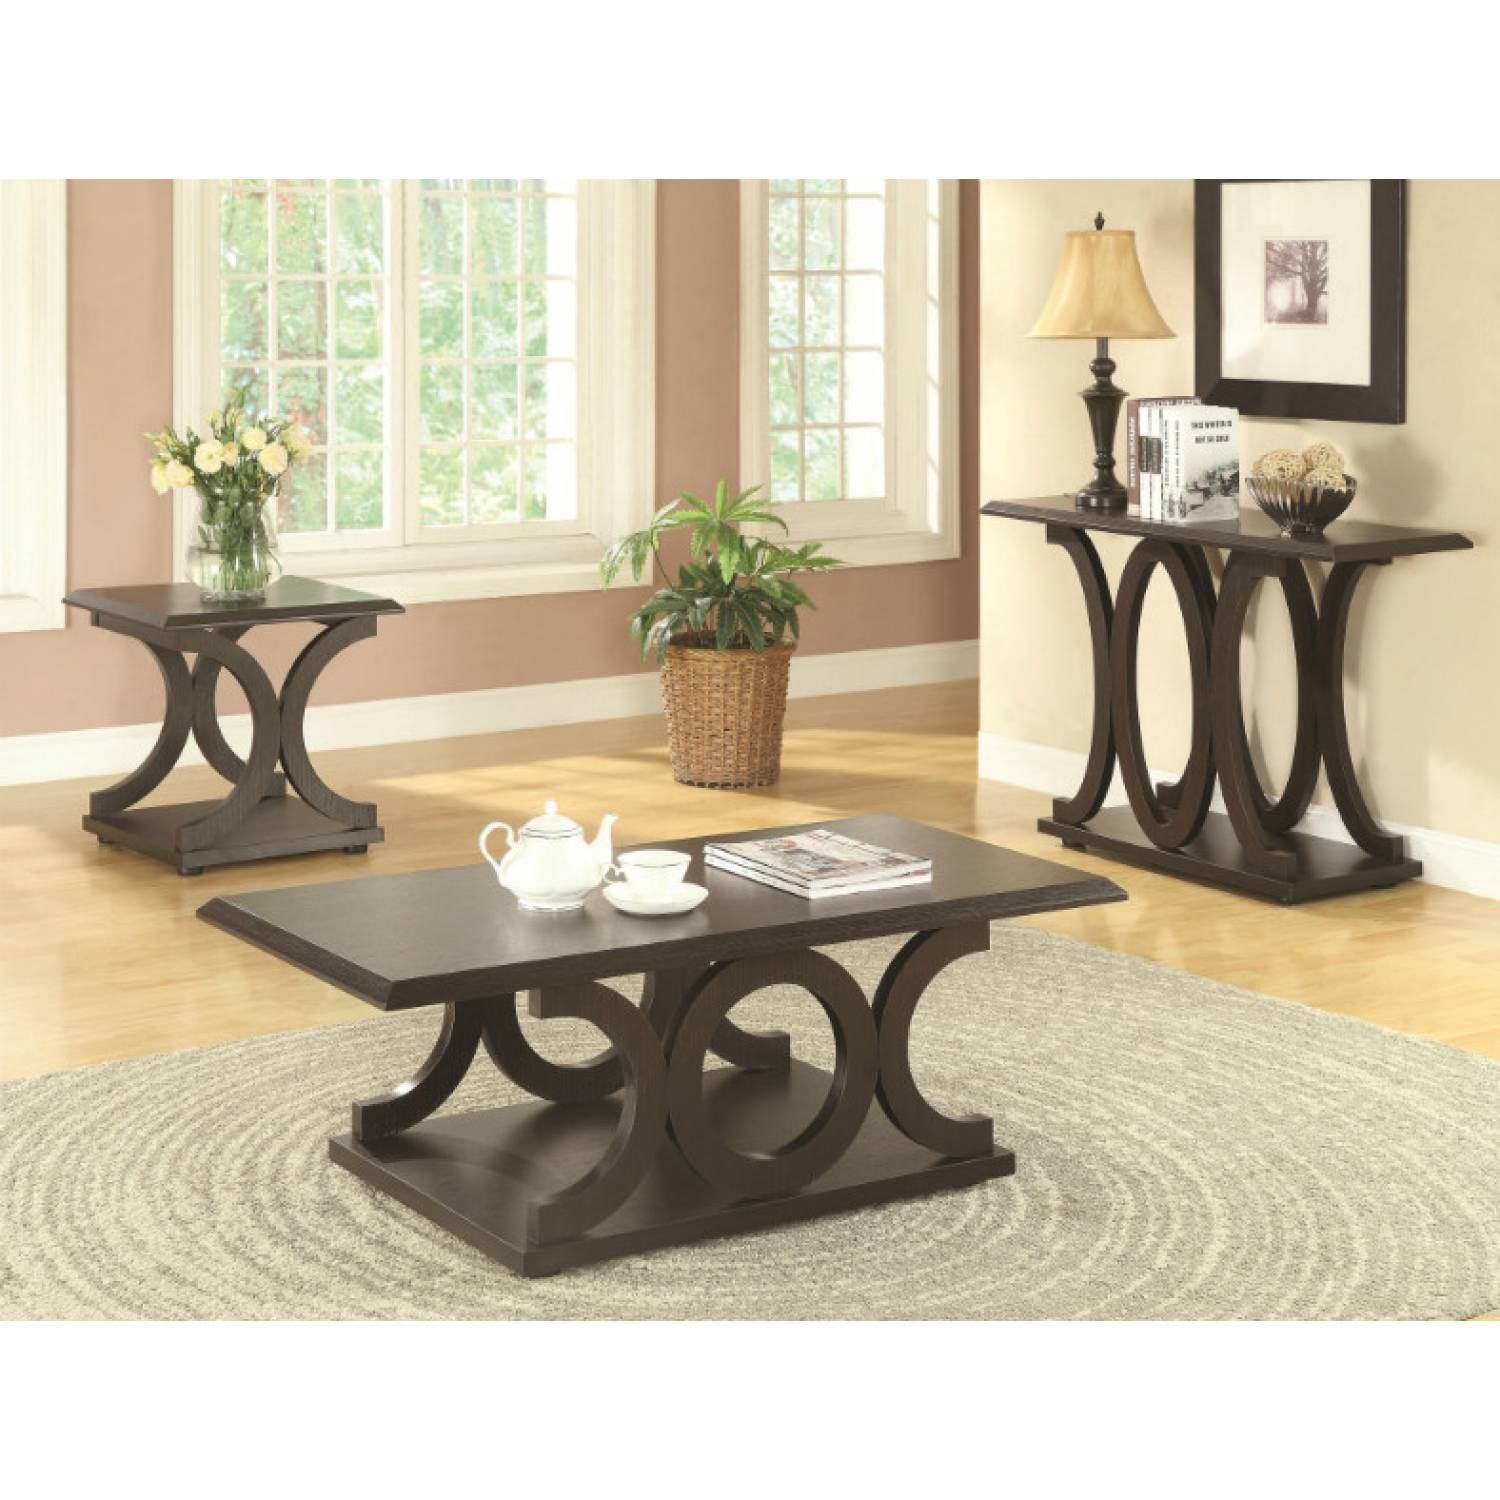 703140 C Shaped Sofa Table